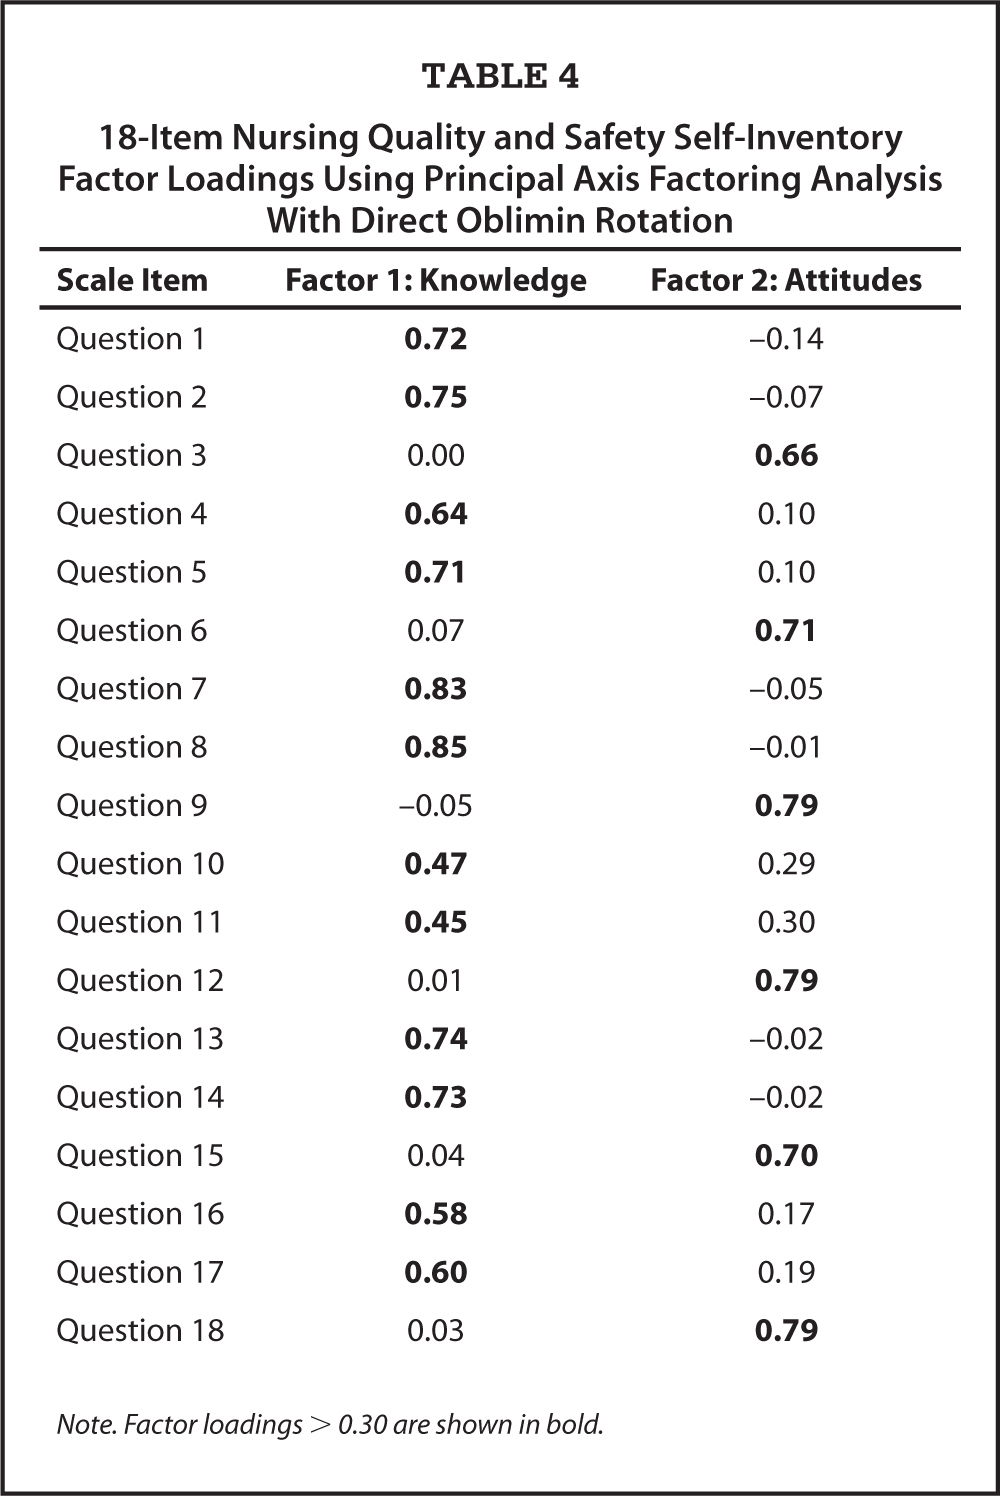 18-Item Nursing Quality and Safety Self-Inventory Factor Loadings Using Principal Axis Factoring Analysis With Direct Oblimin Rotation